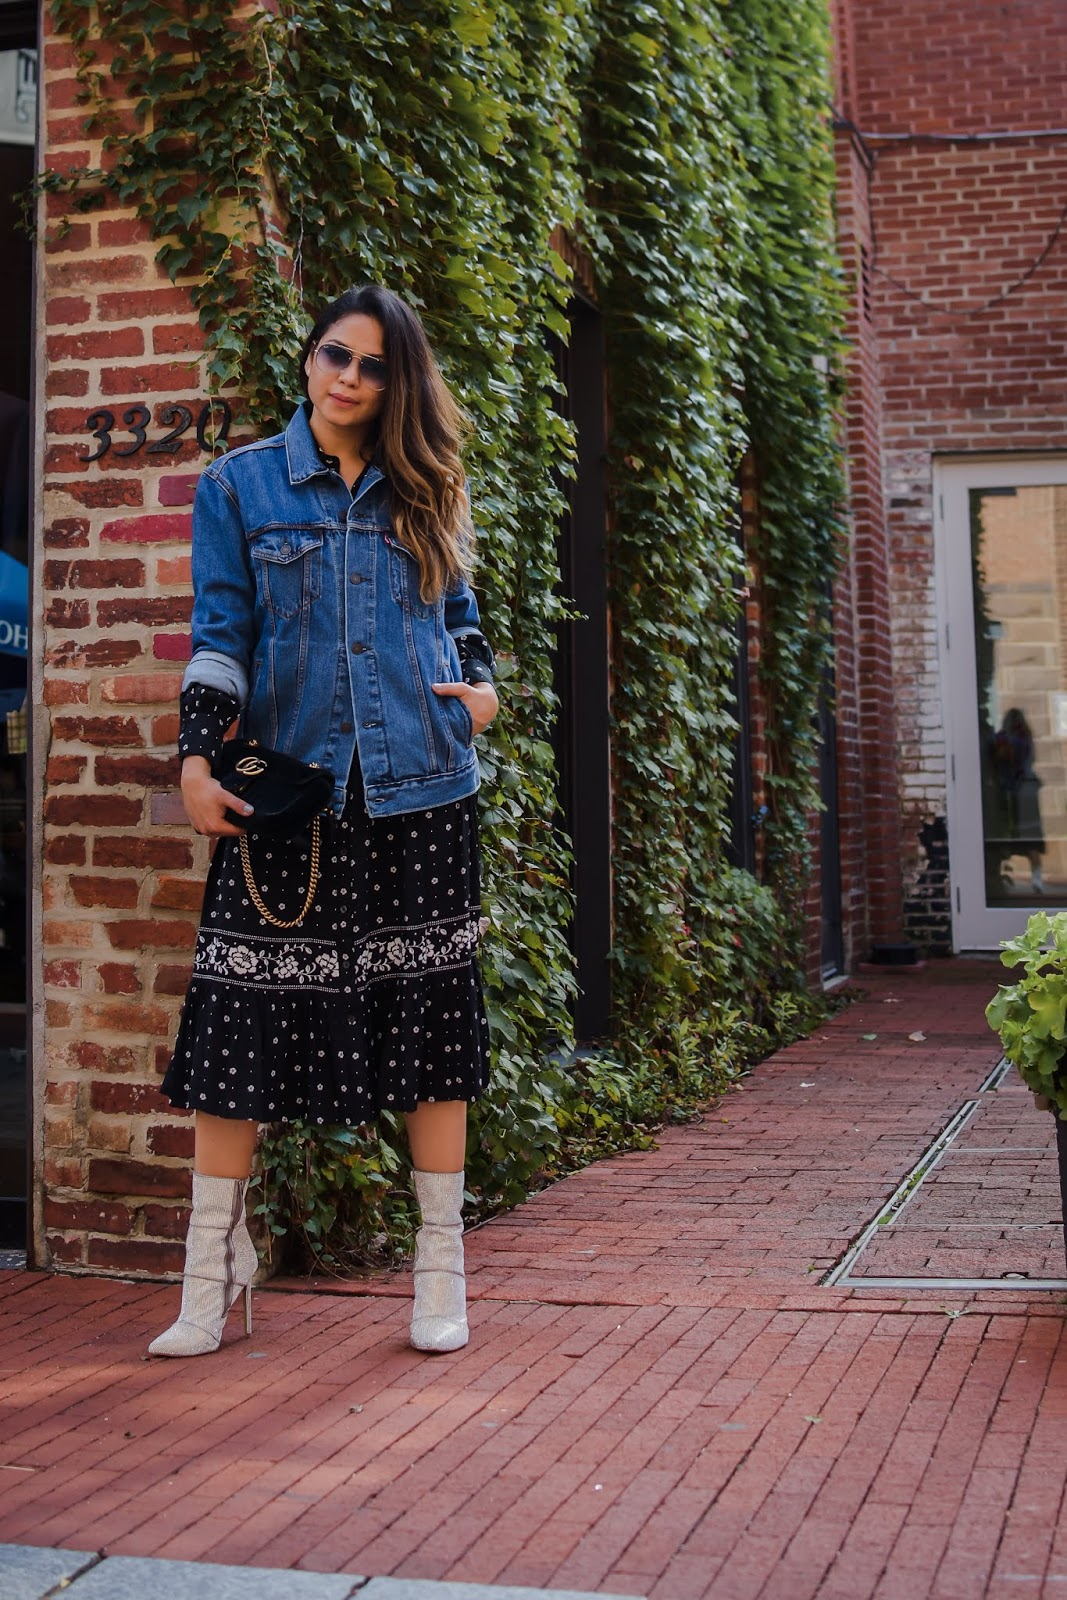 kate spade bandana dress, black dress, supersized denim jacket, boyfriedn jakcet, street style, holiday look, party look, fall fashion, steve madden sparkly booties,  myriad musings